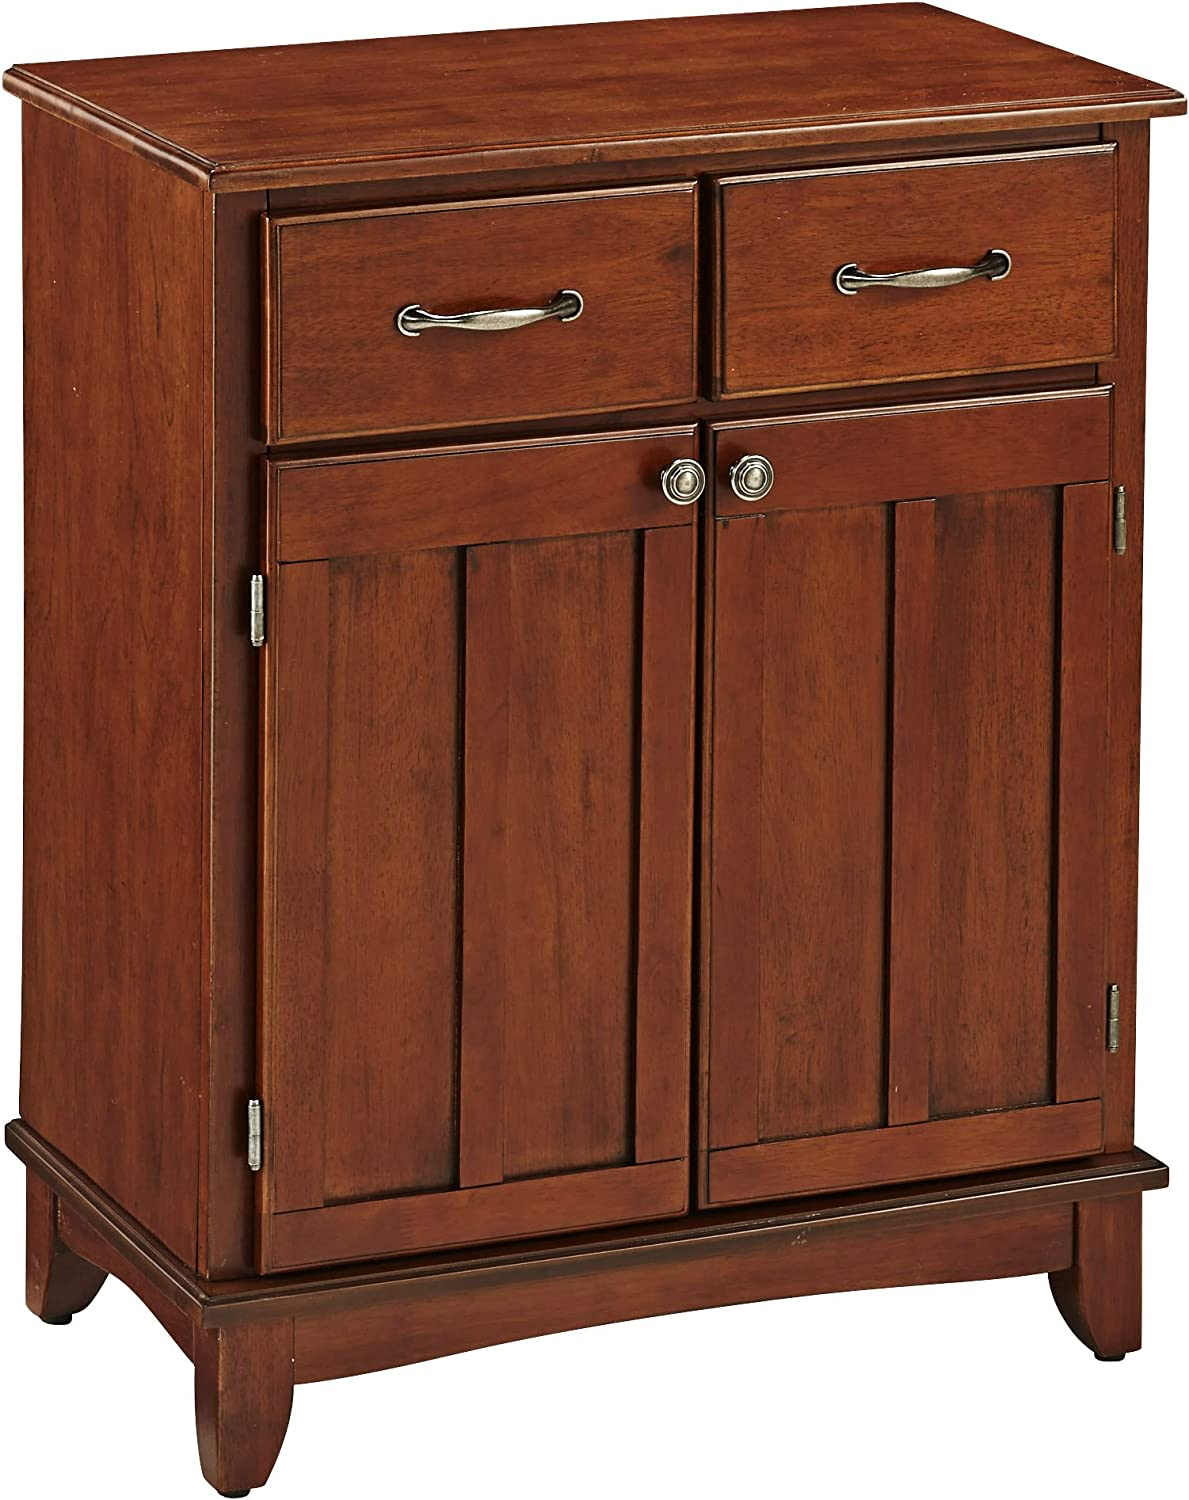 Buffet of Buffet Medium Cherry with Wood Top by Home Styles